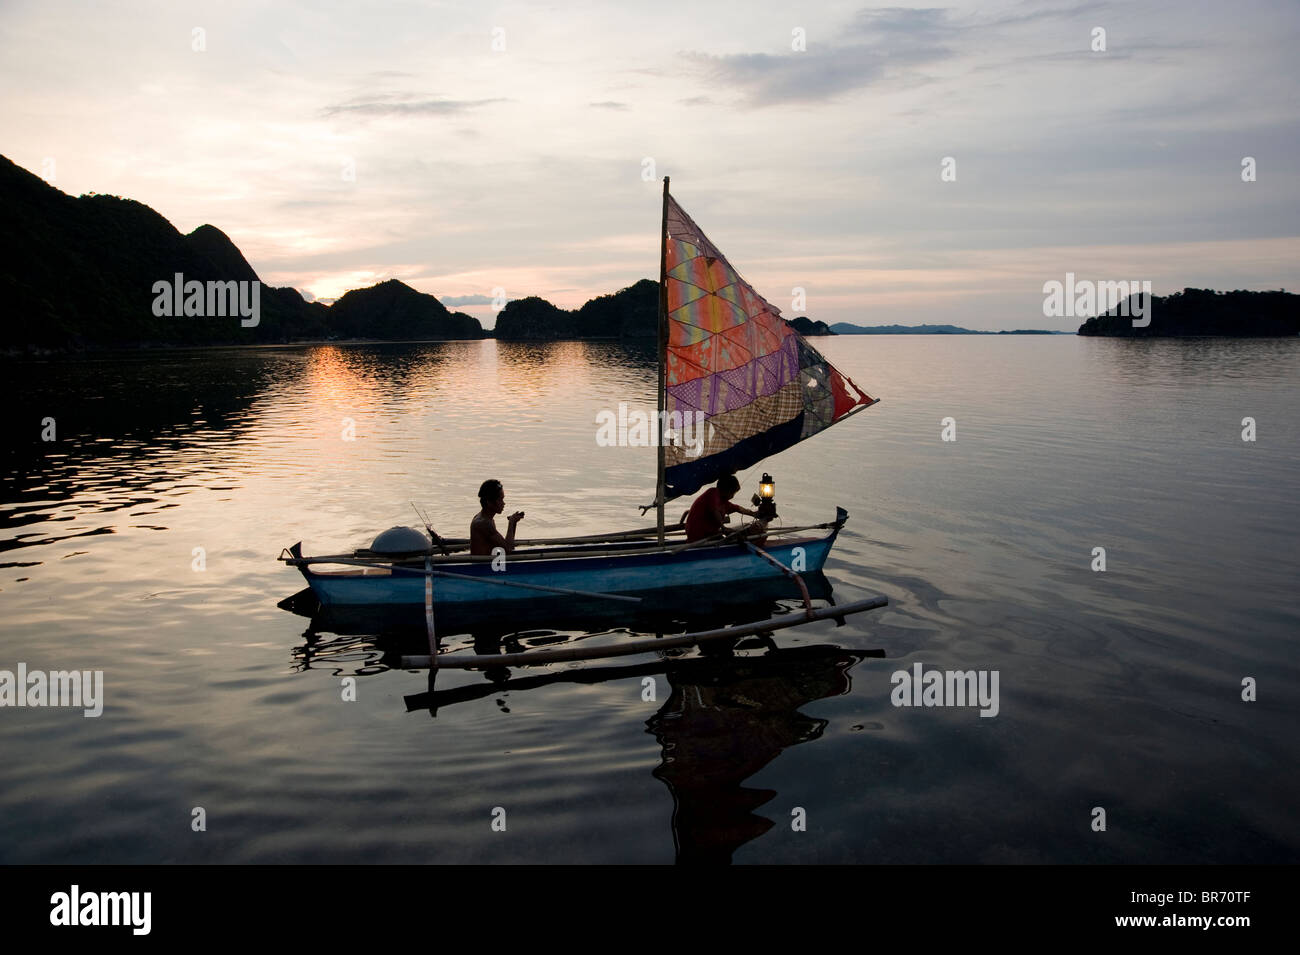 fisherman and son on traditional sailboat out for night fishing, Reel Combo